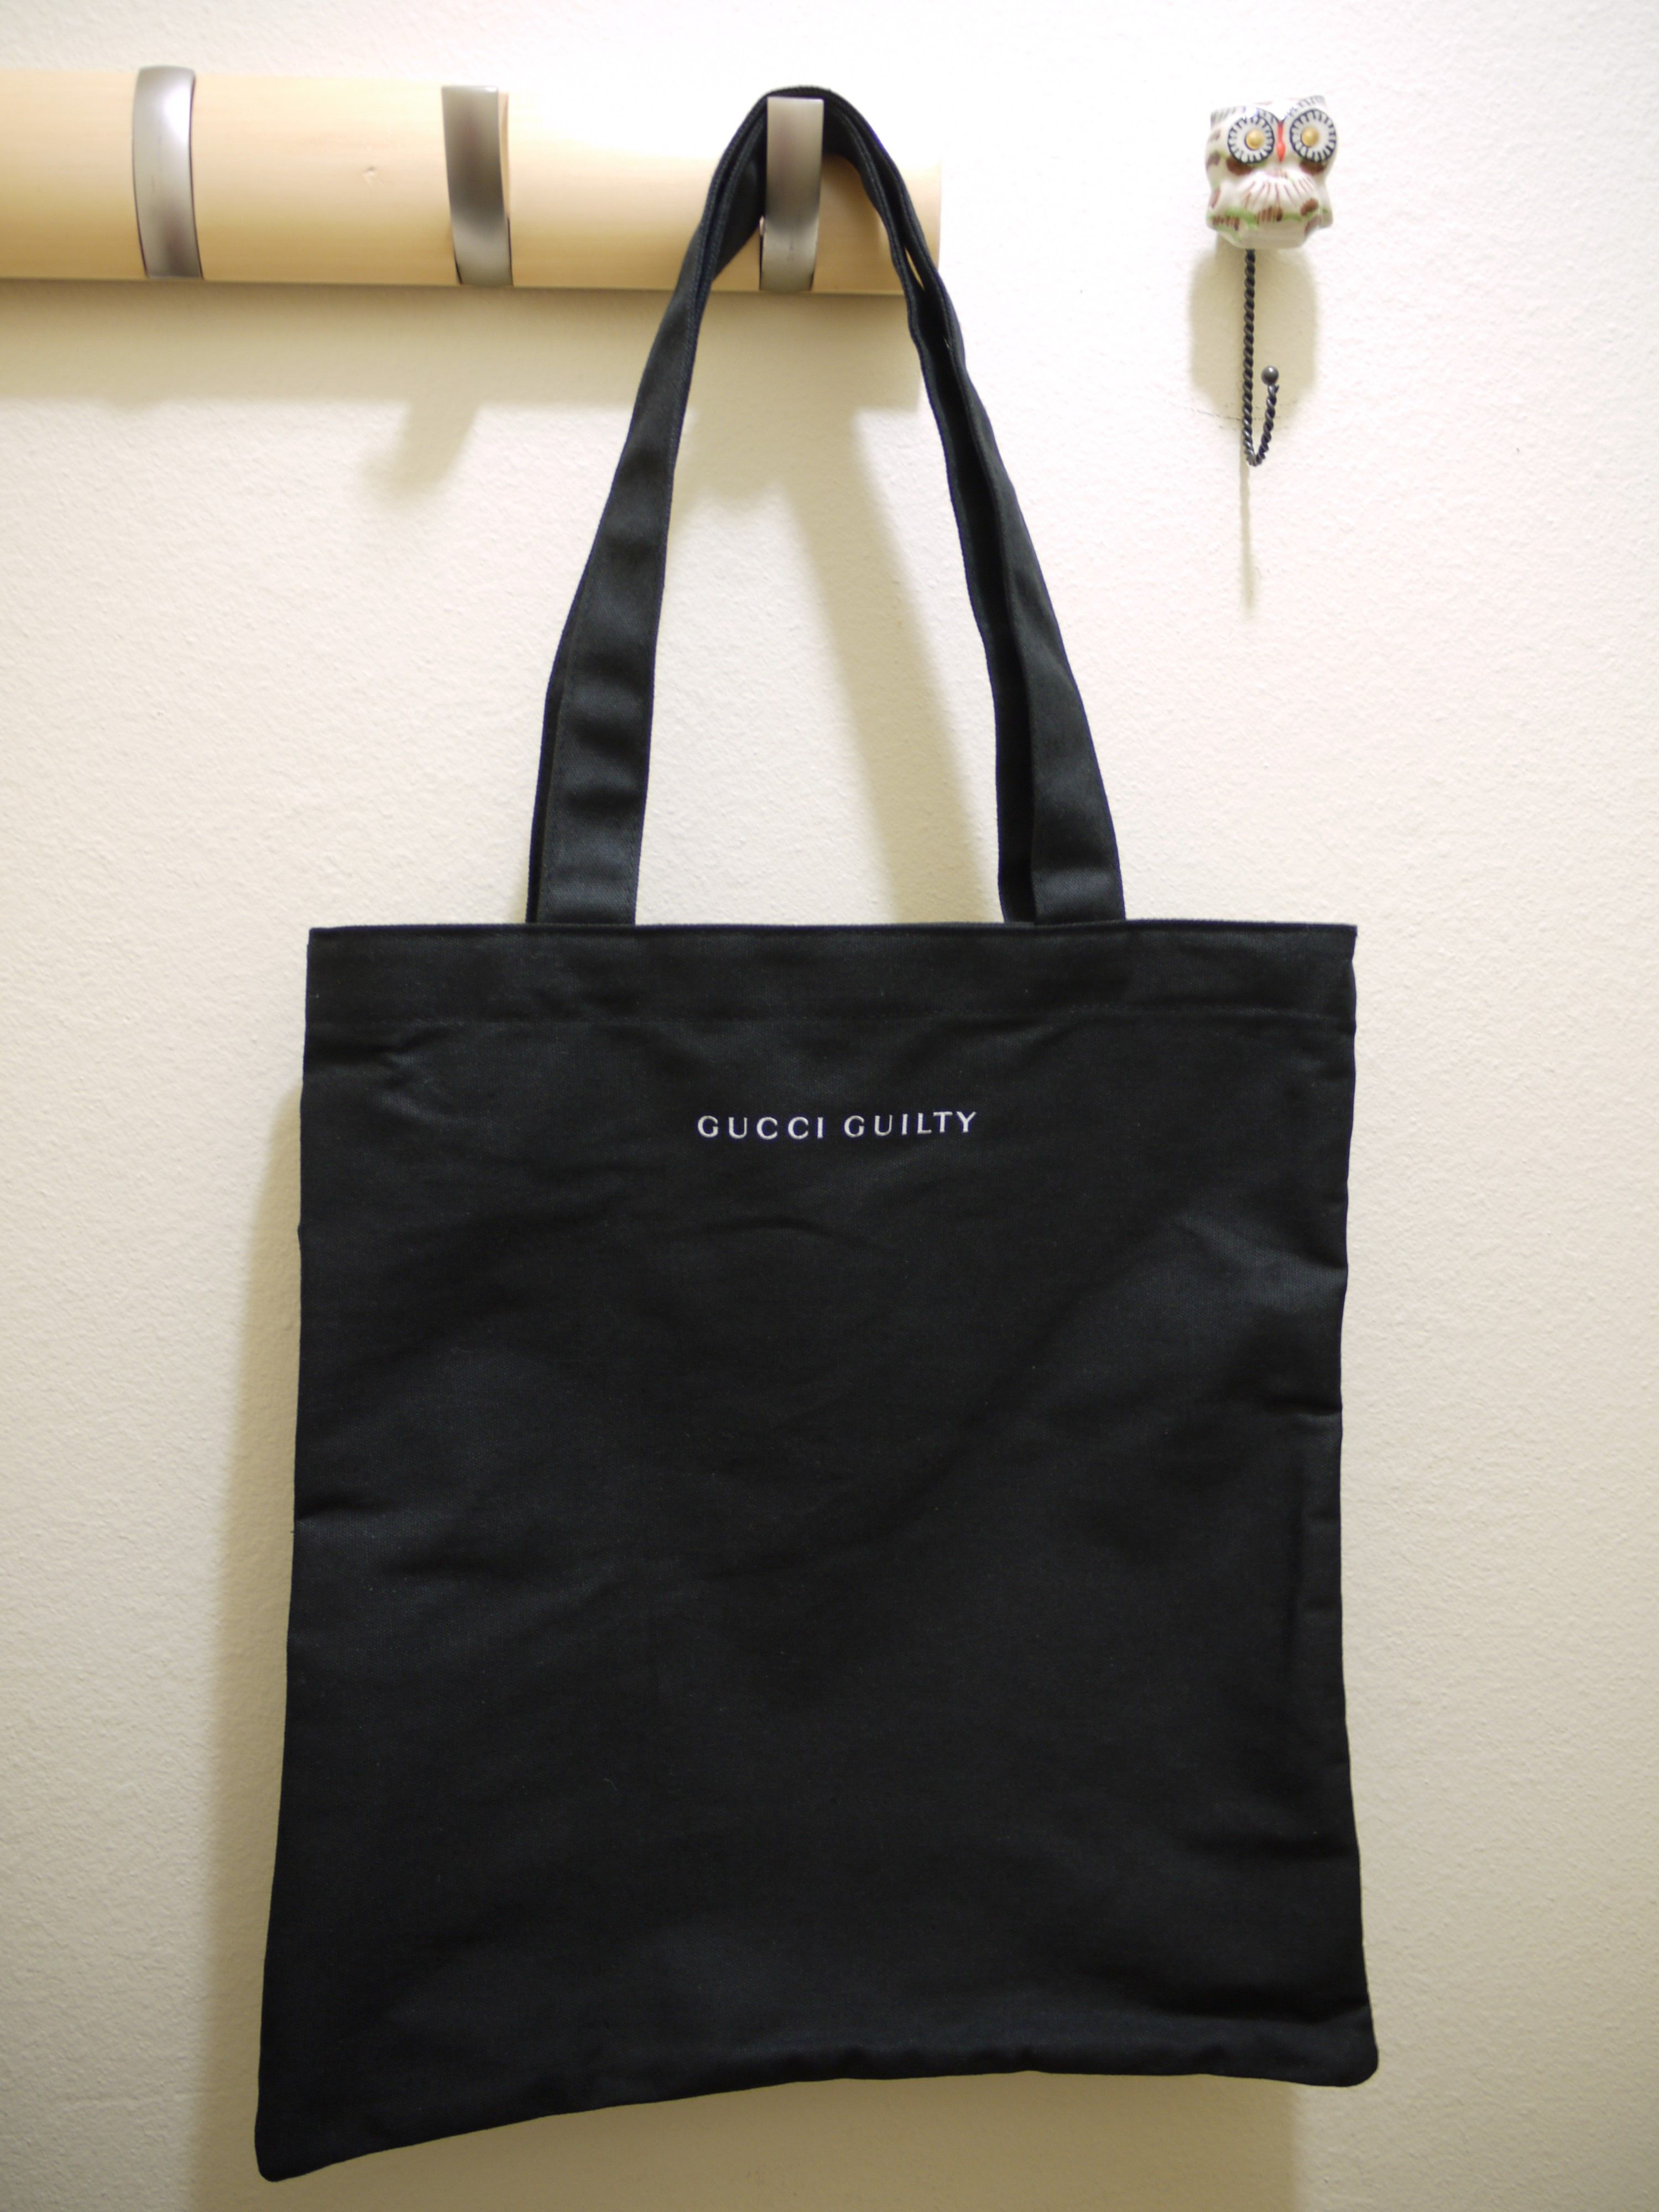 9a1be57c295 Gucci Guilty Fabric Tote Shopping Bag - Black